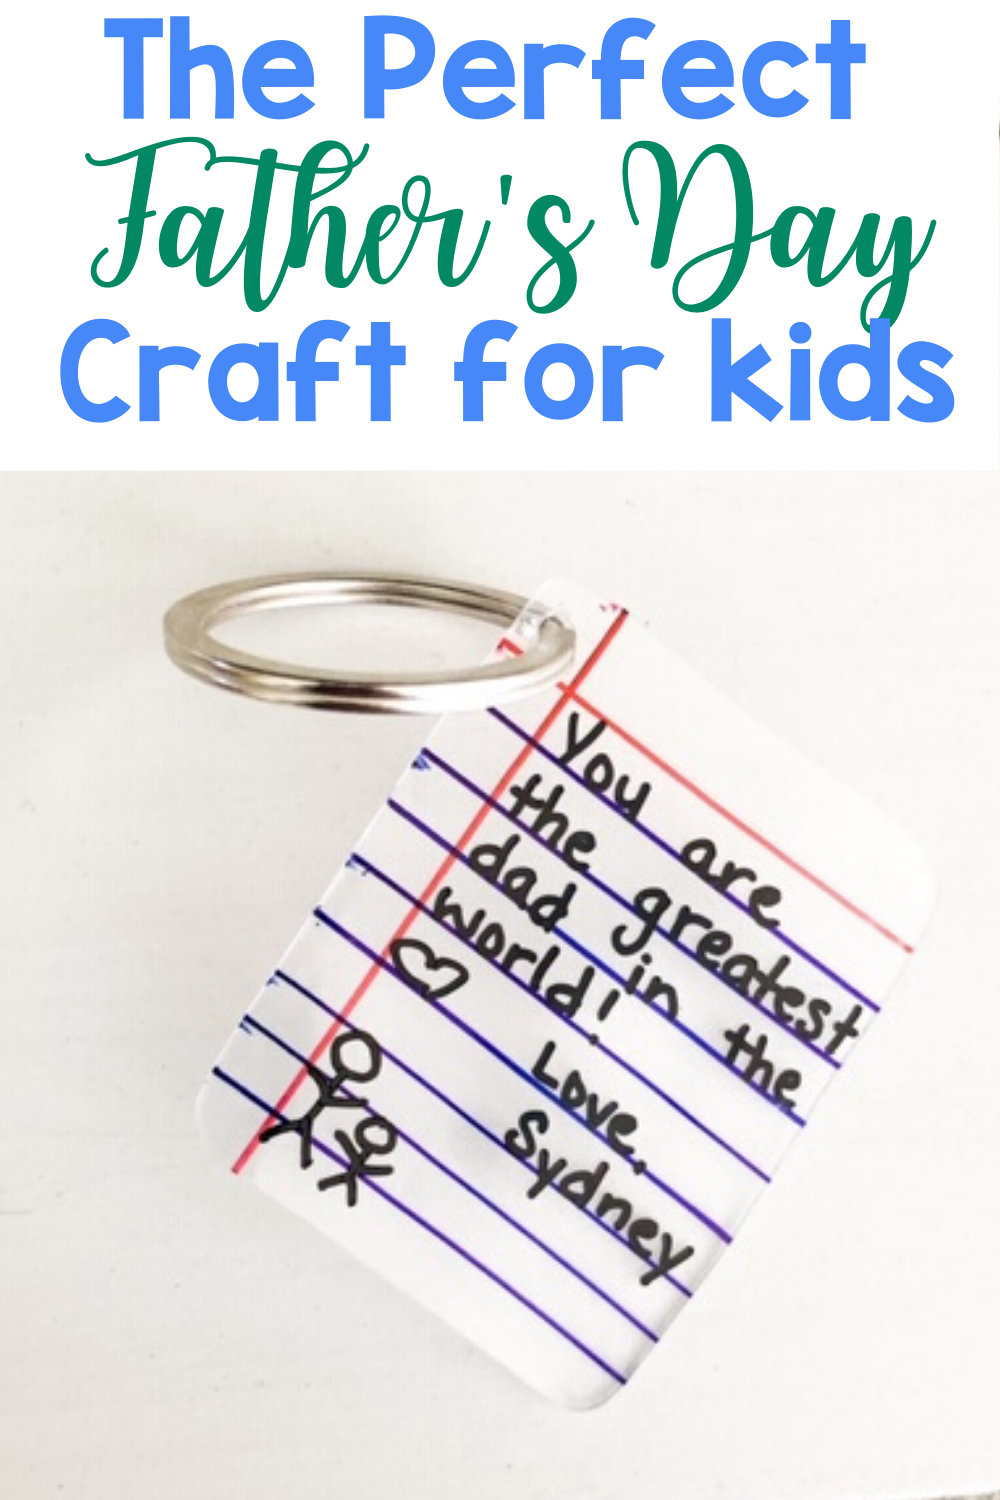 The Perfect Father's Day Craft for Kids